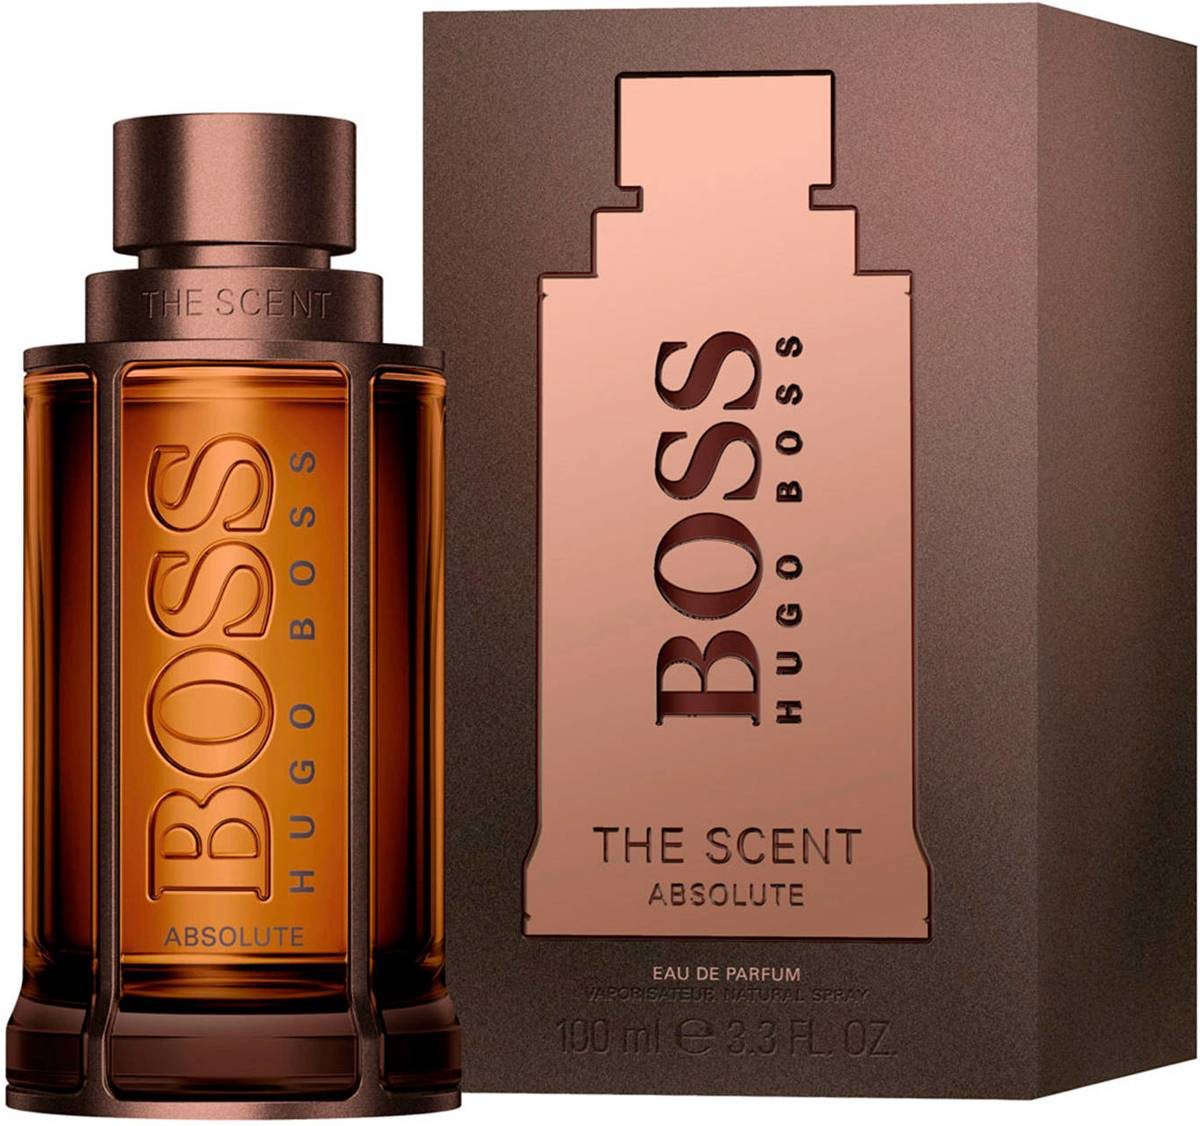 Hugo Boss-boss THE SCENT ABSOLUTE edp spray 100 ml